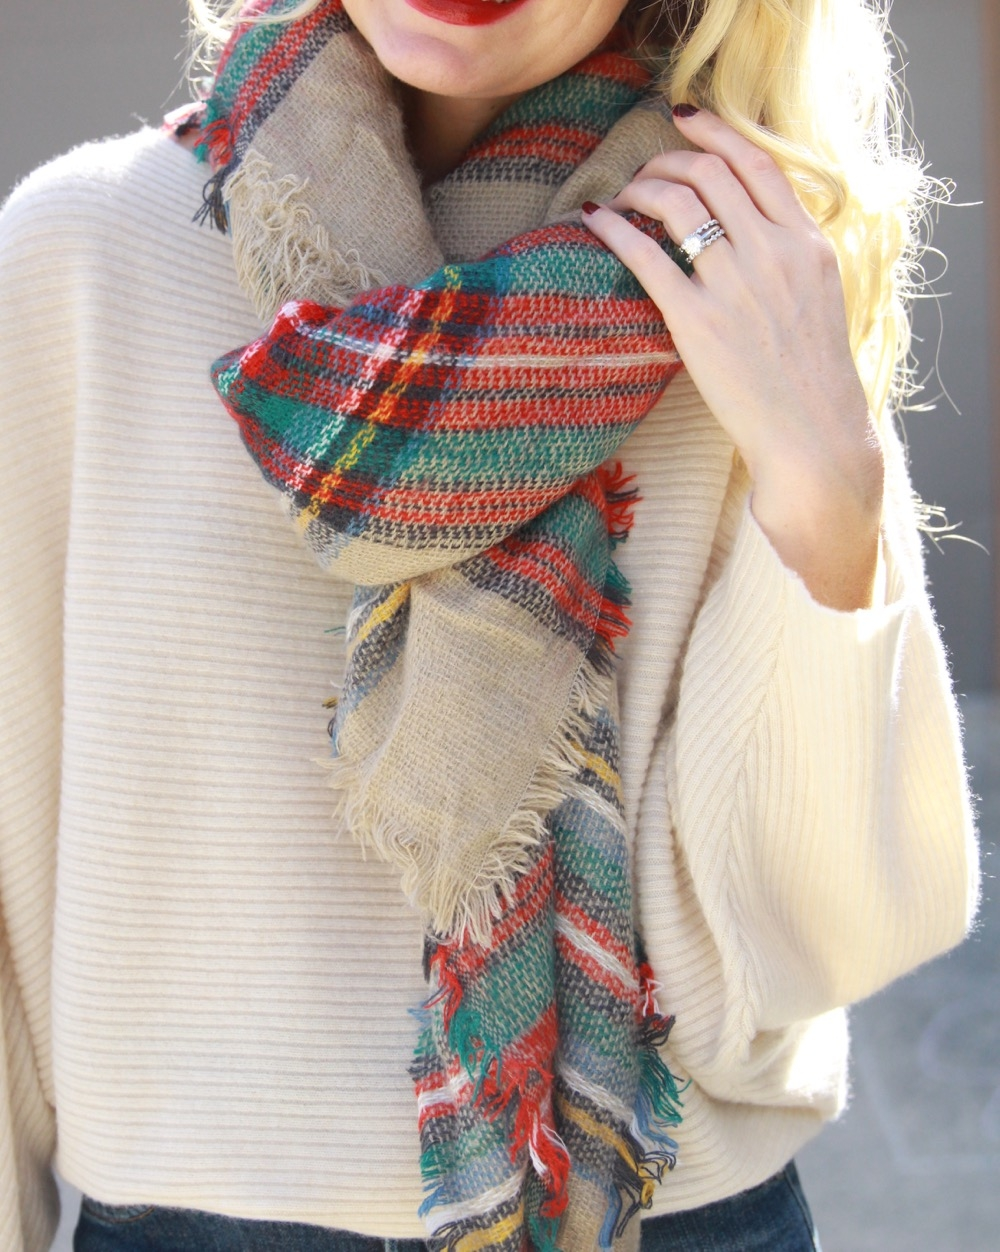 knotted blanket scarf in red and green with white cashmere sweater and red lipstick